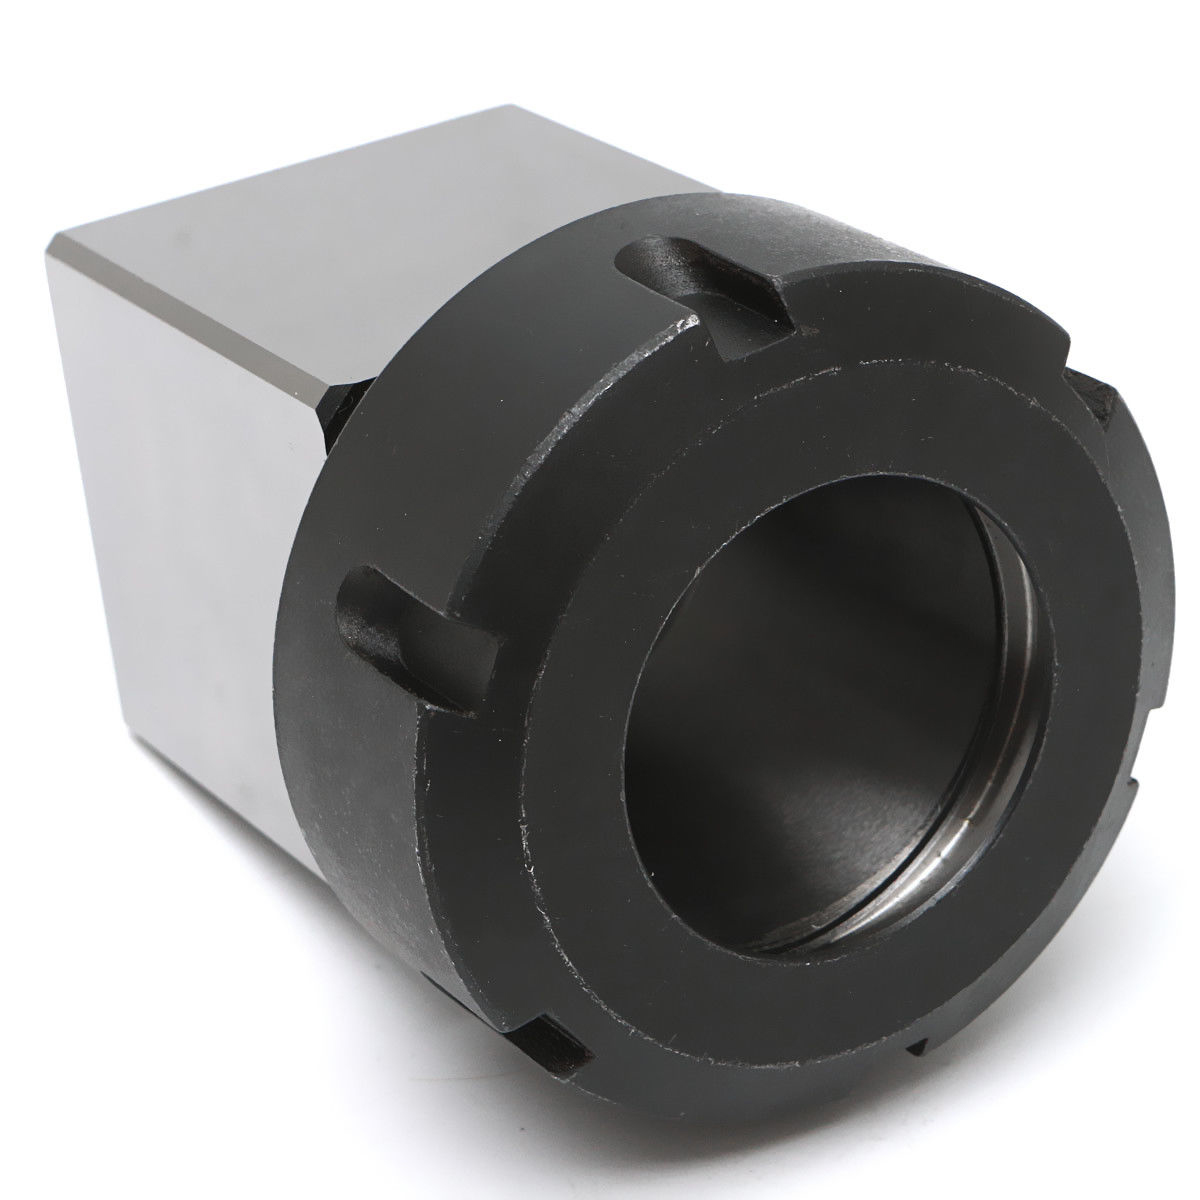 1pc High Strength ER-40  3900-5125 Square Collet Chuck Block Holder For CNC Lathe Engraving Machine 1pc square er40 collet chuck block holder 3900 5125 for cnc lathe engraving machine cross hole drilling